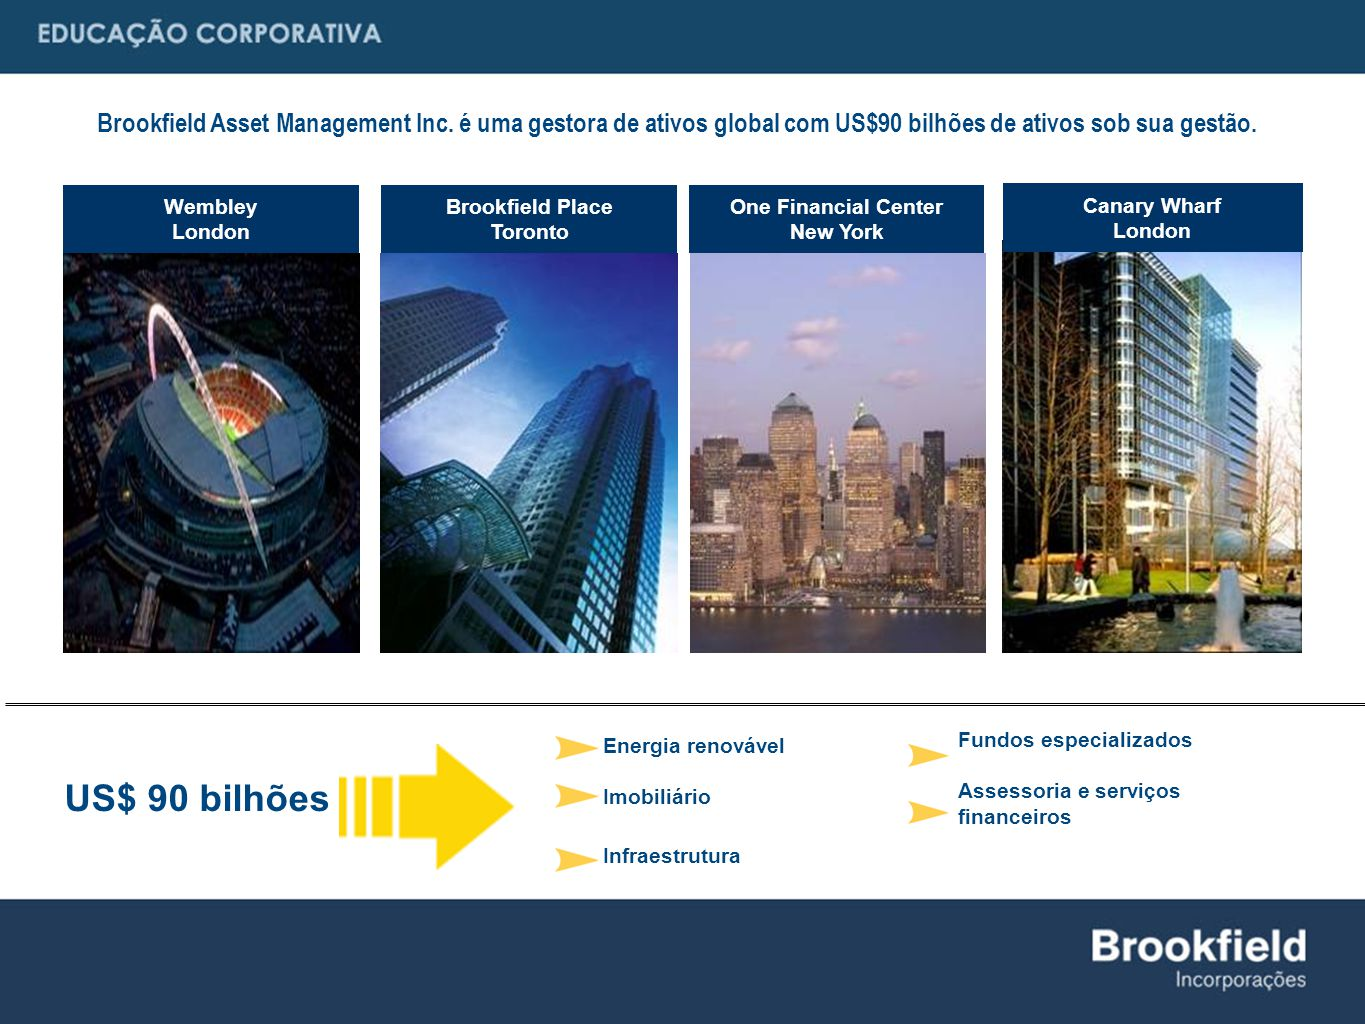 Brookfield Asset Management Inc